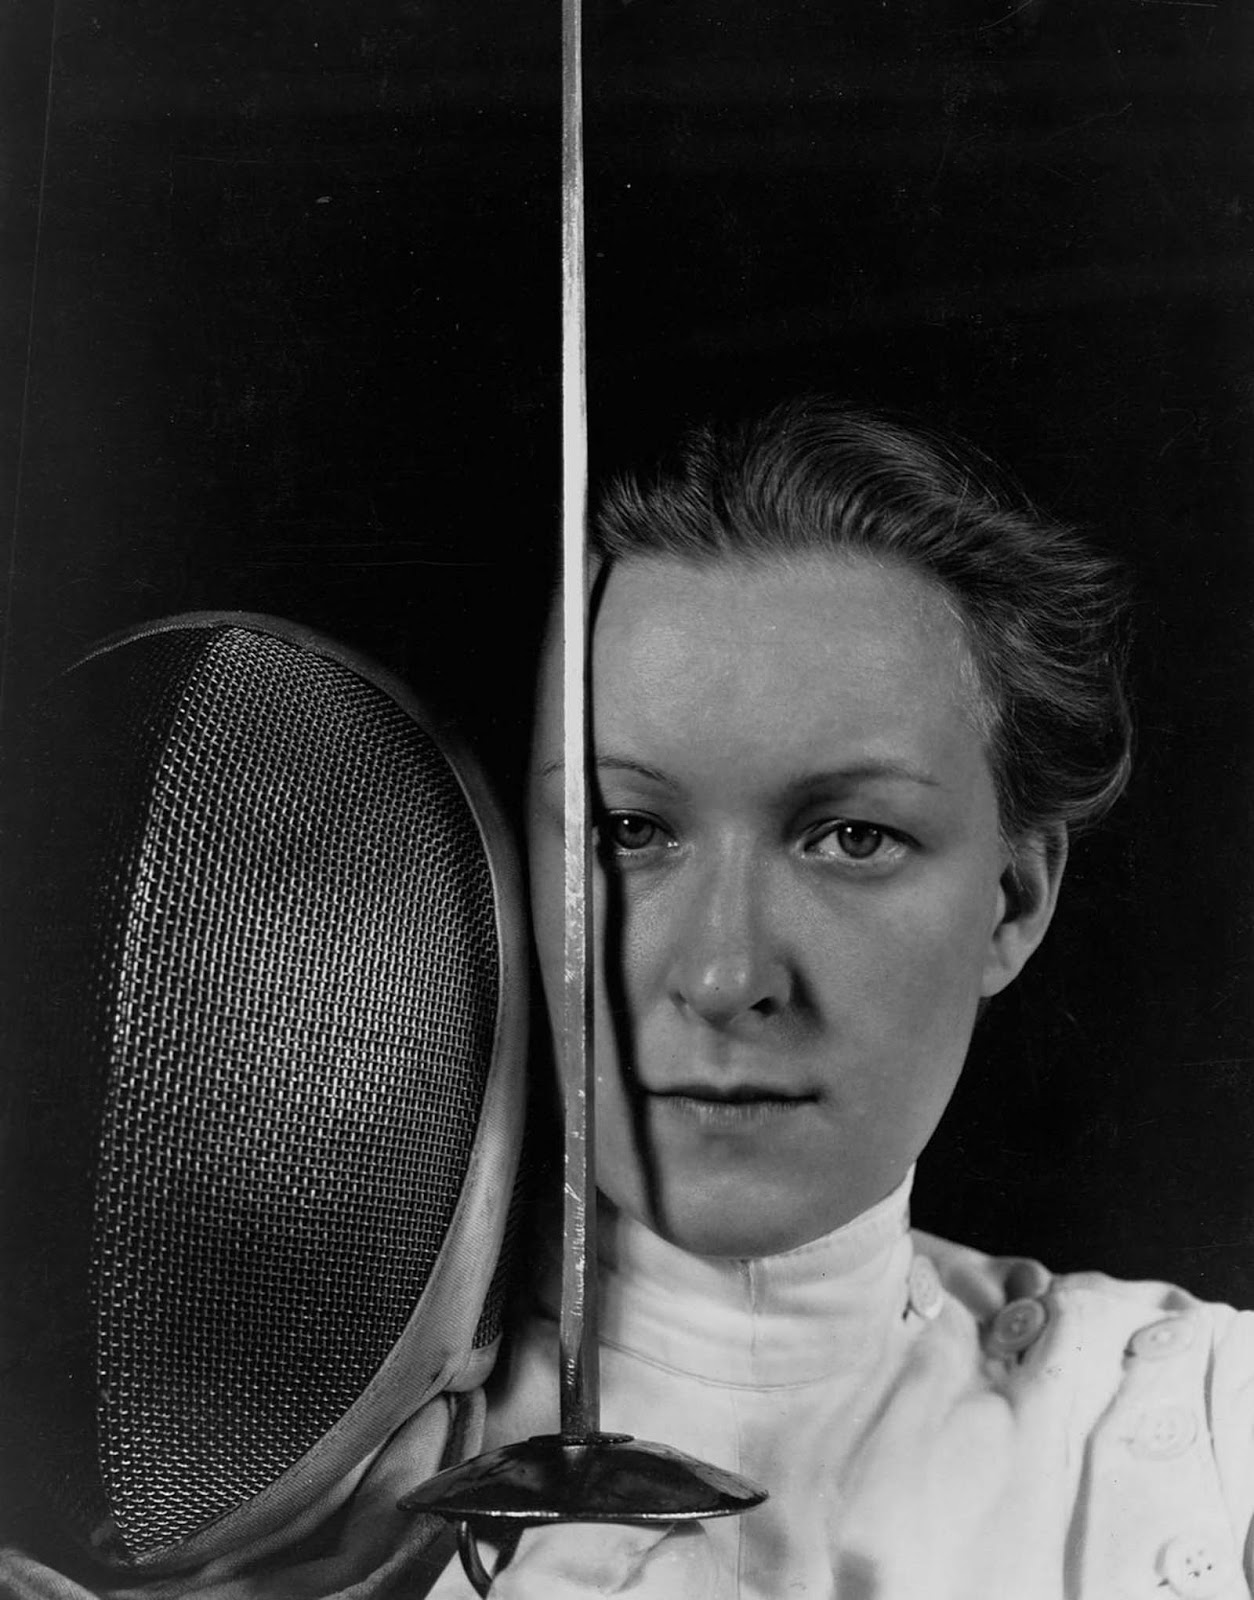 Mayer was only 13 when she won the German women's foil championship in 1924. This picture was taken in 1928.